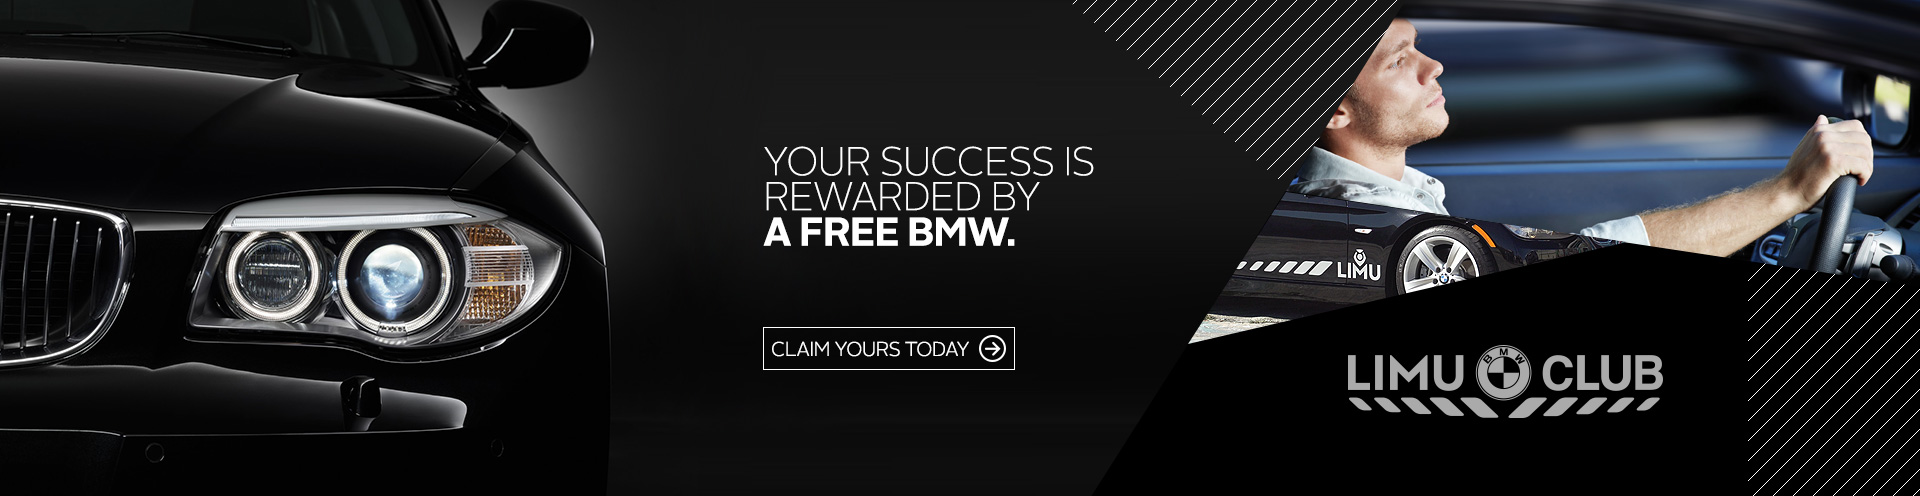 SLIDER_03_LIMU_BMW_CLUB